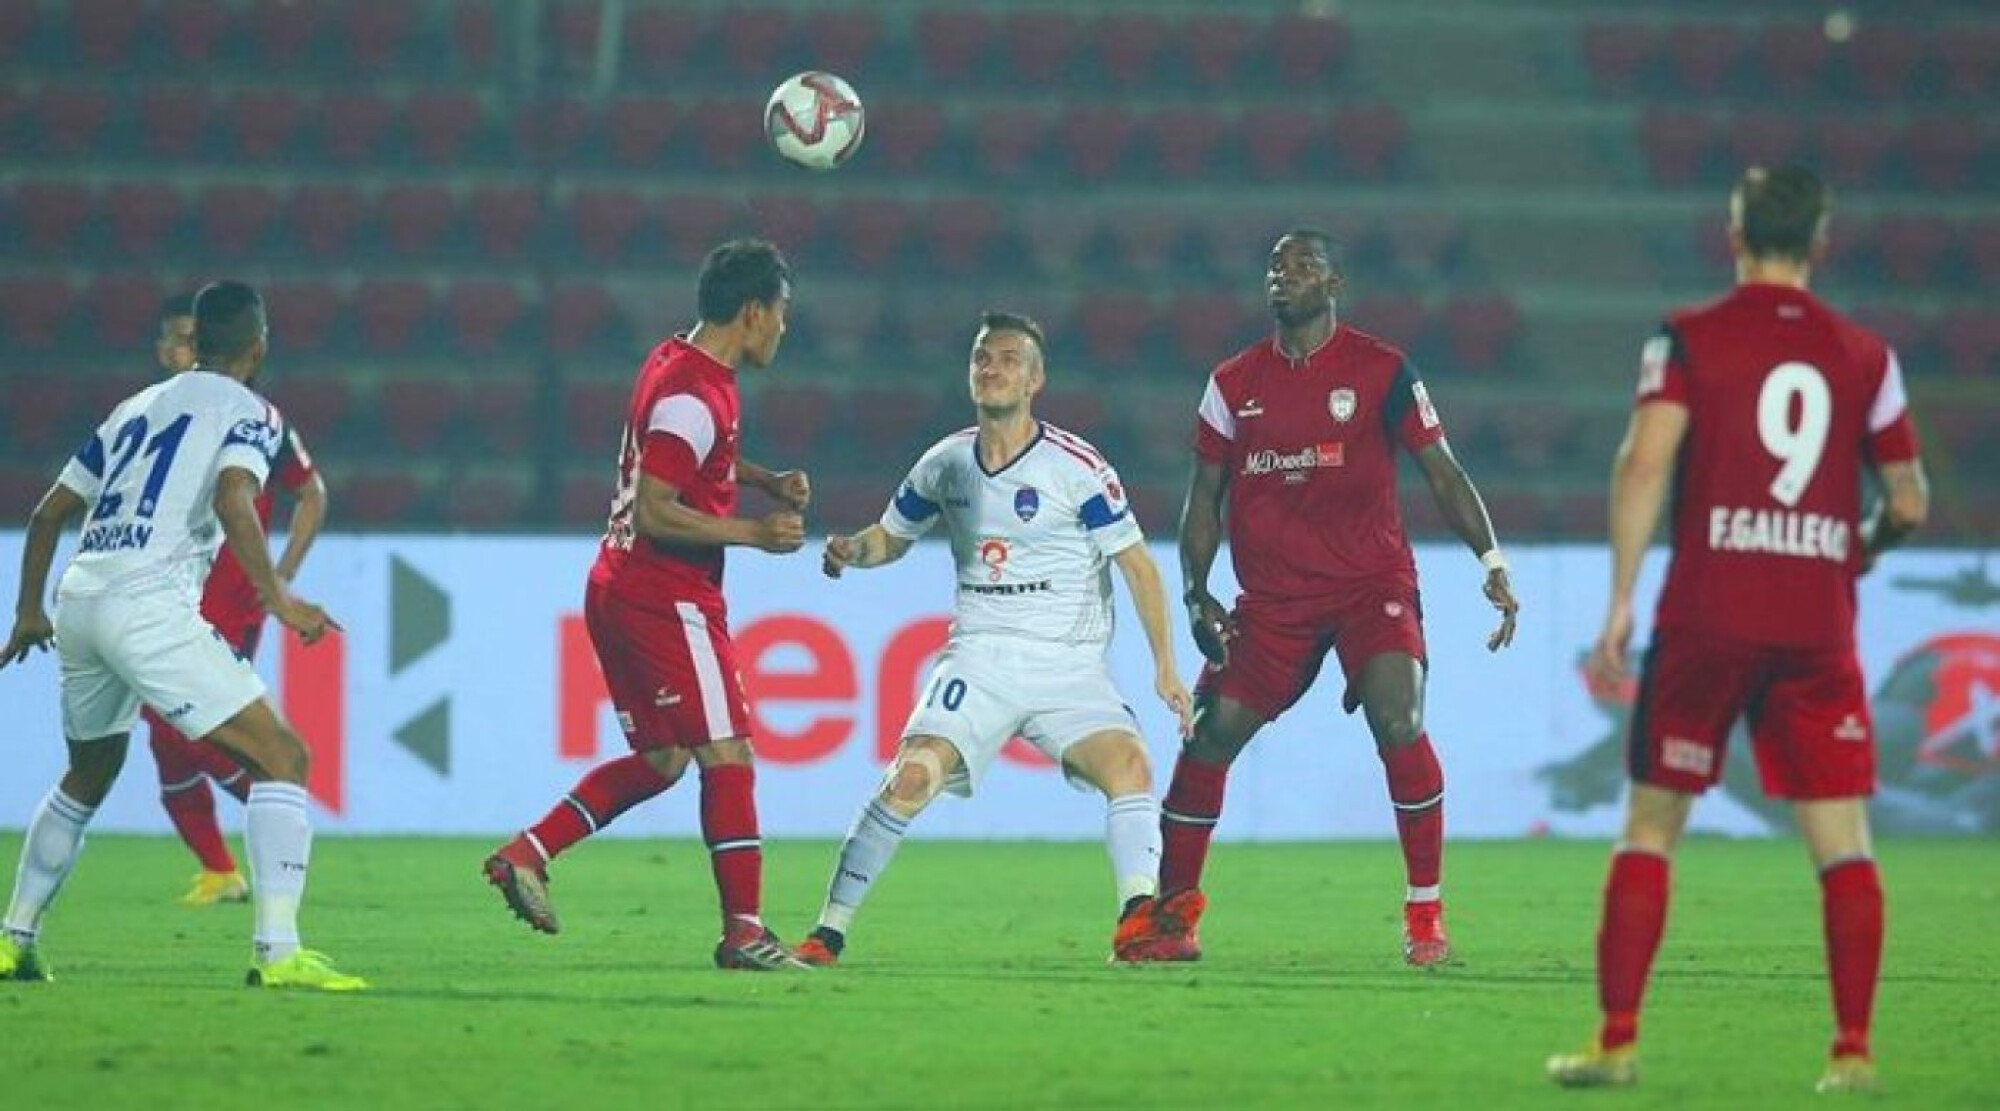 ISL 2018-19: Wasteful NorthEast United share spoils with Dynamos